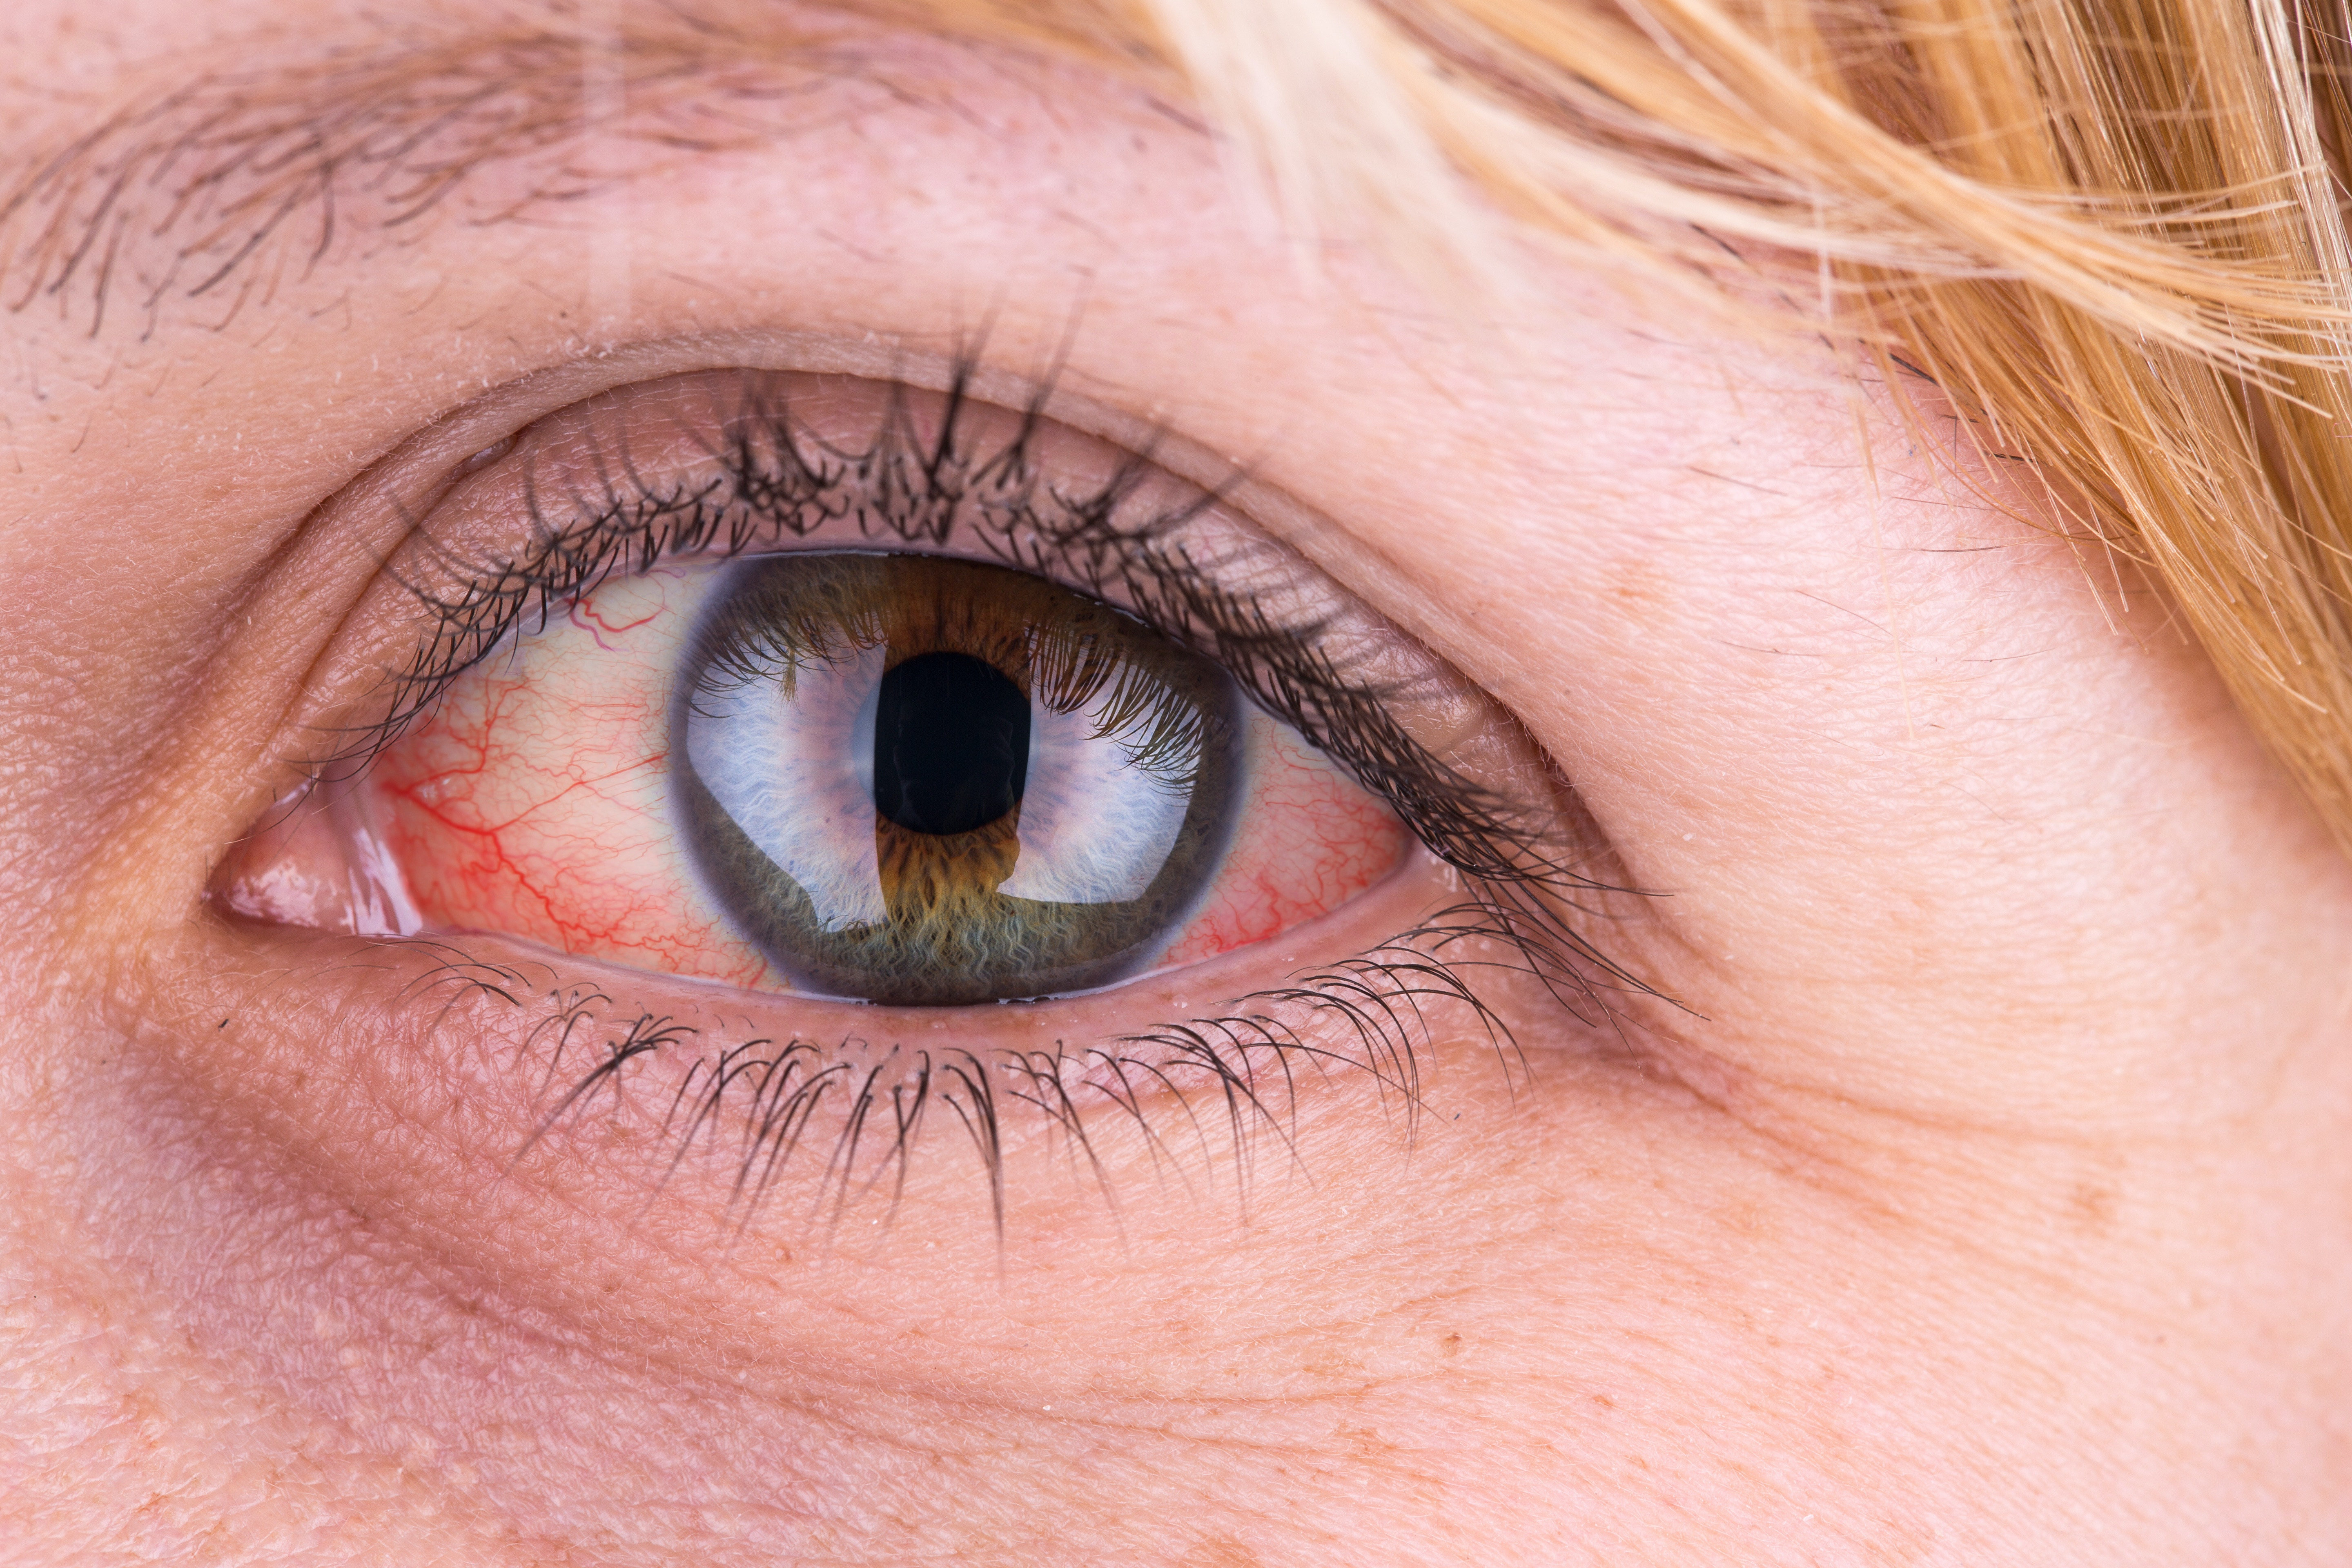 Causes of redness of the eyes - what they are 58